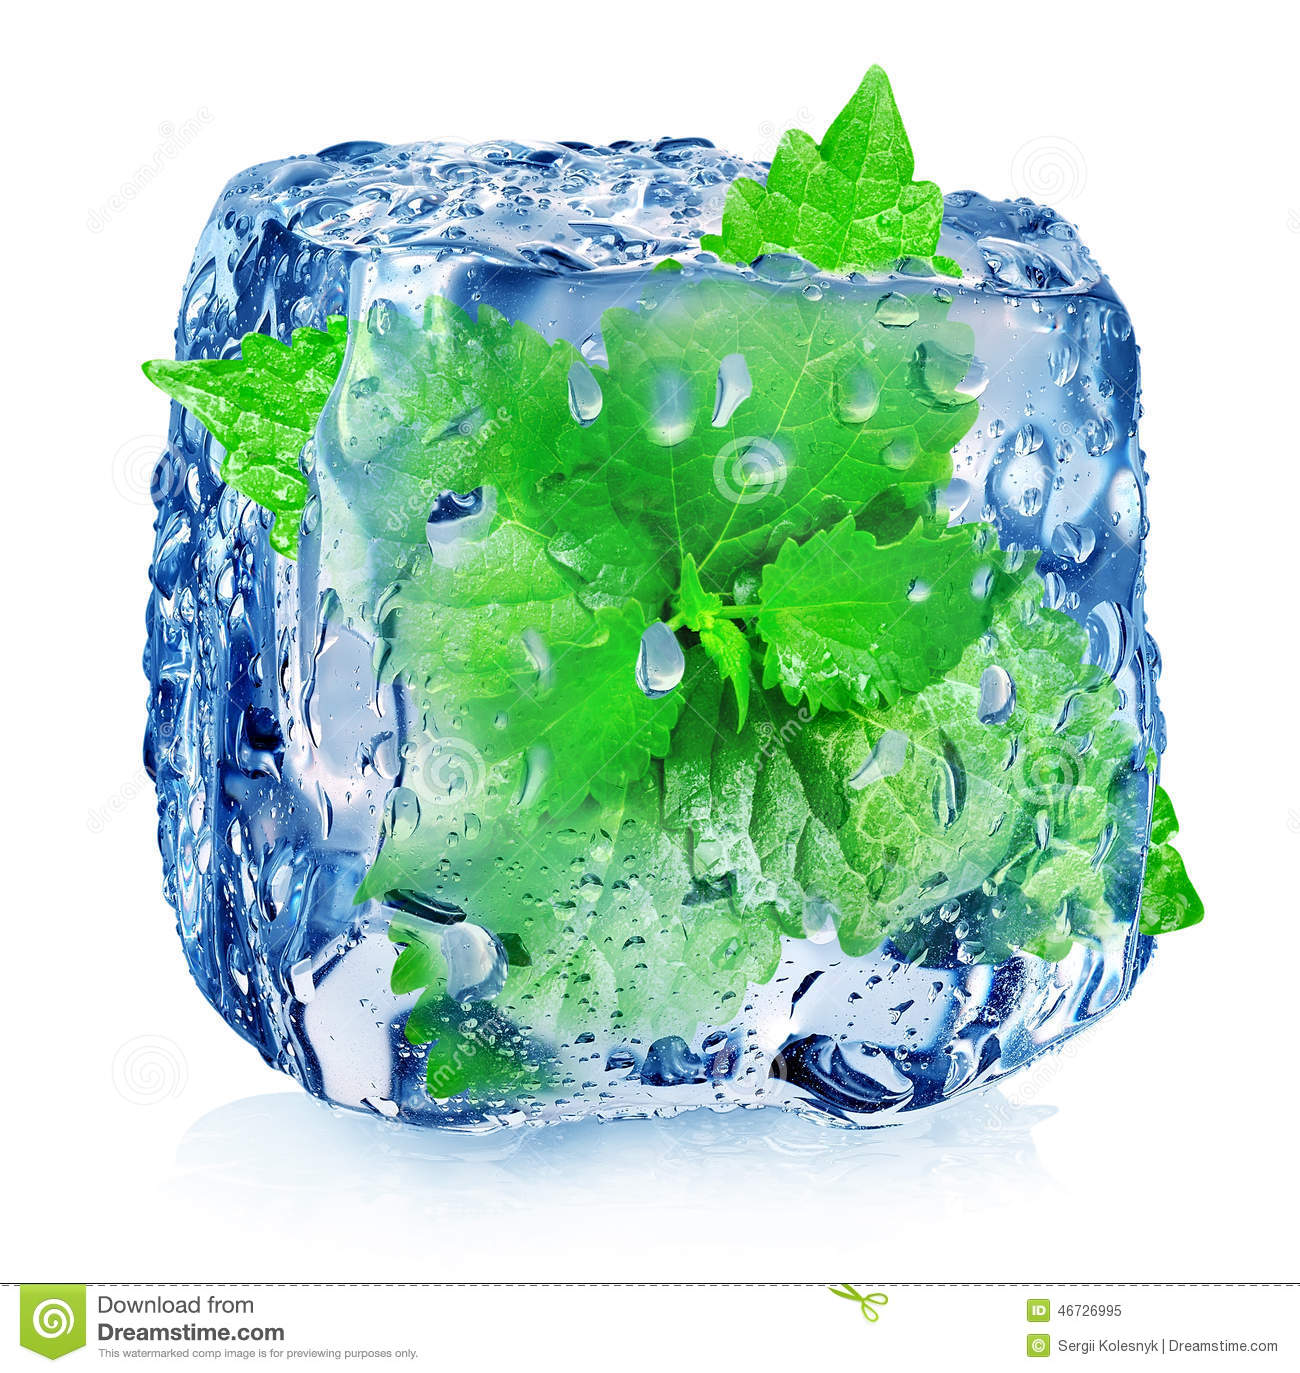 mint-ice-cube-isolated-white-46726995.jpg